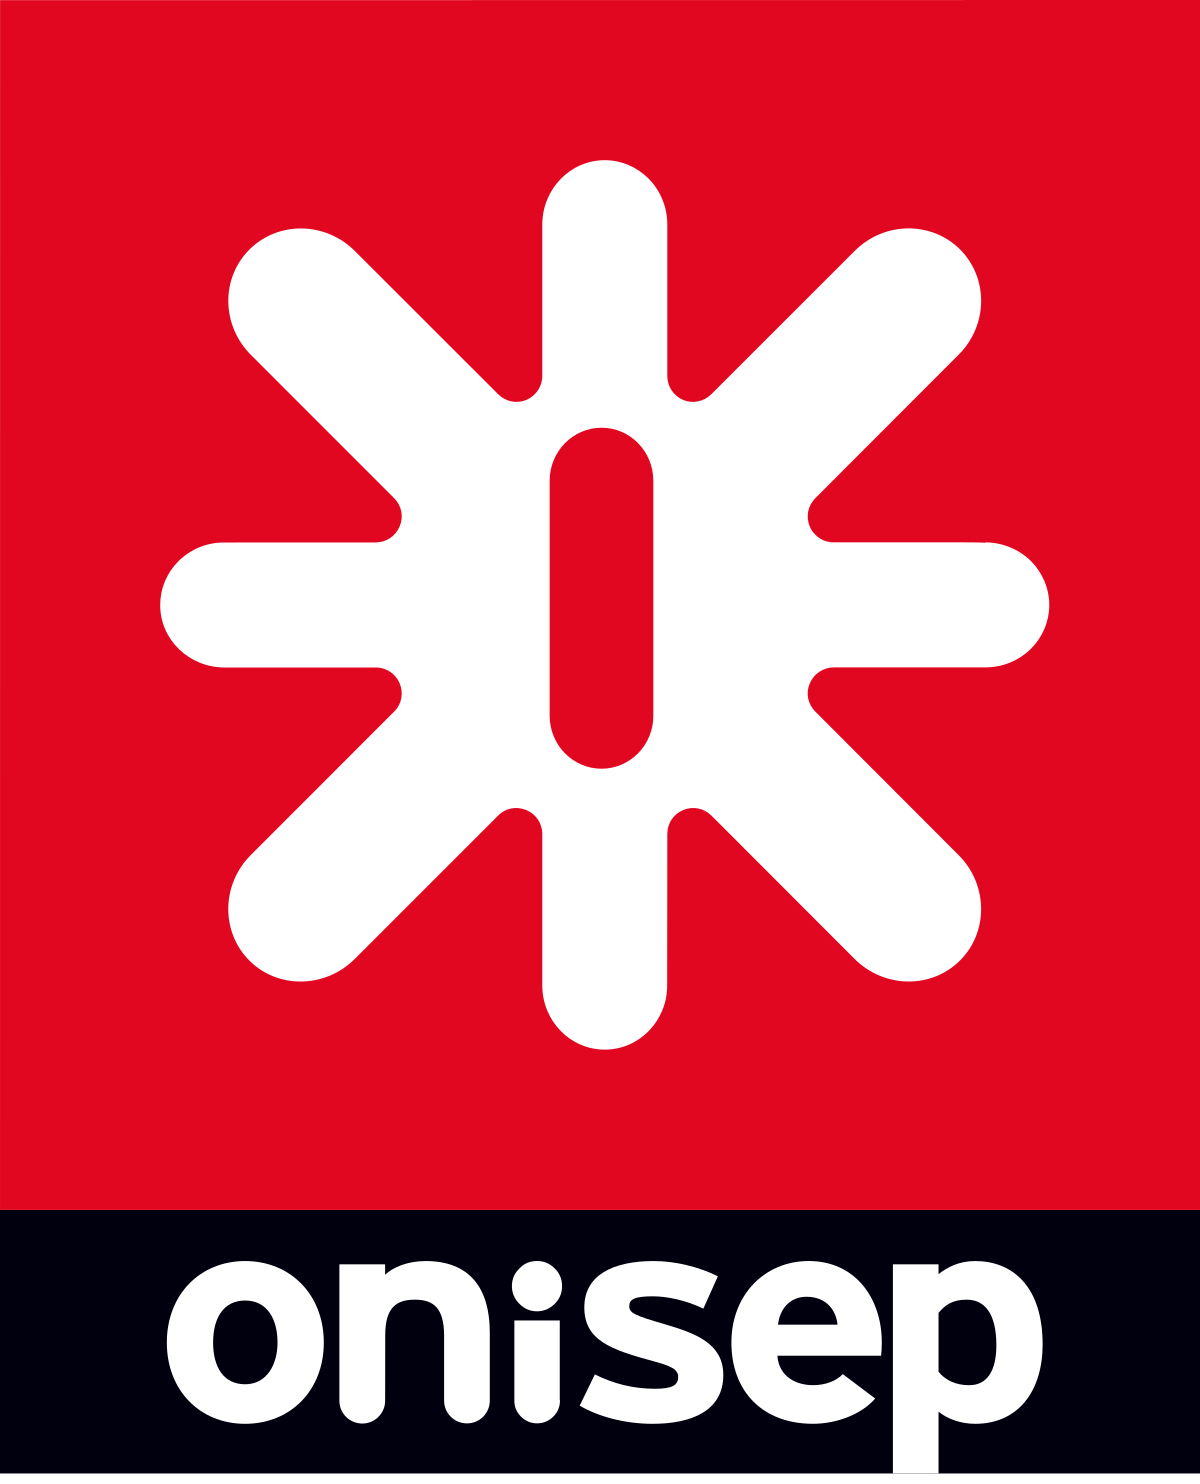 Onisep.svg.png